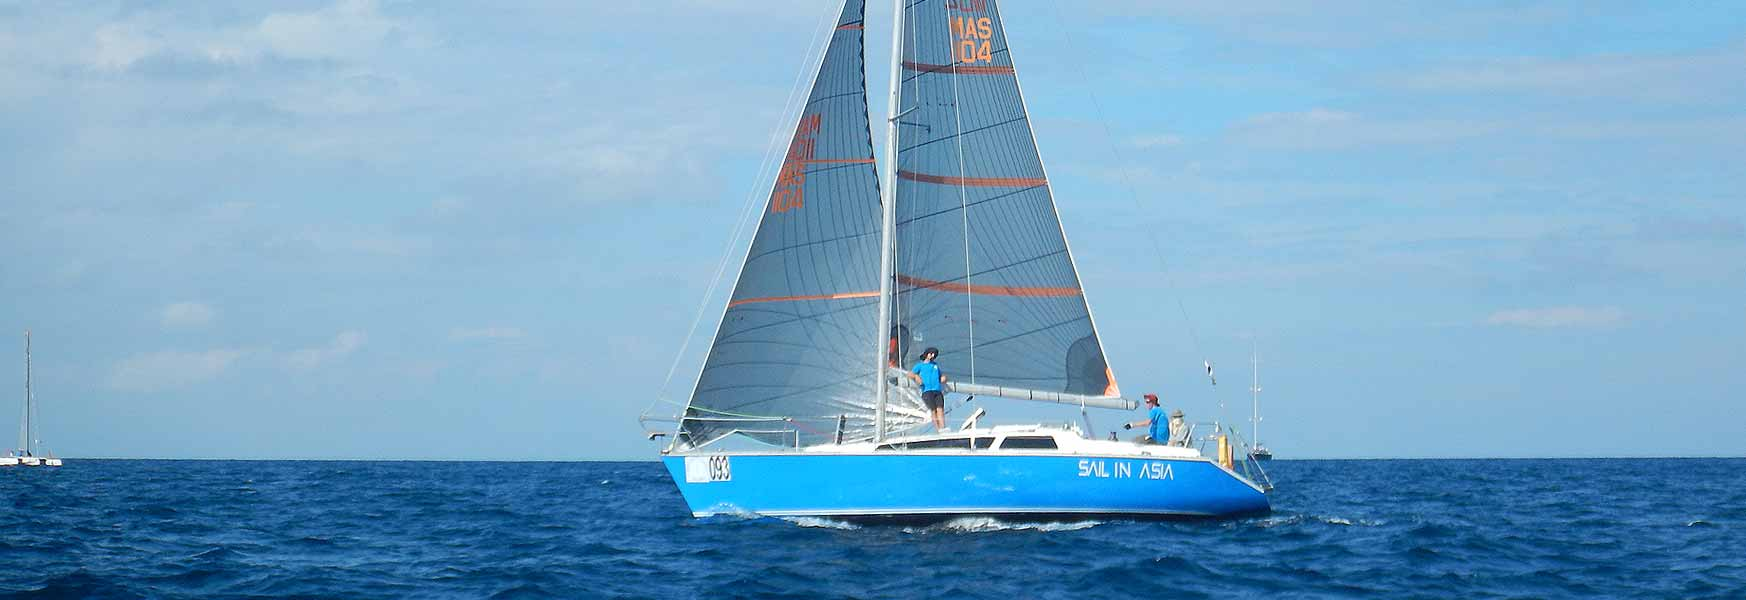 yacht-racing-home-slider-4